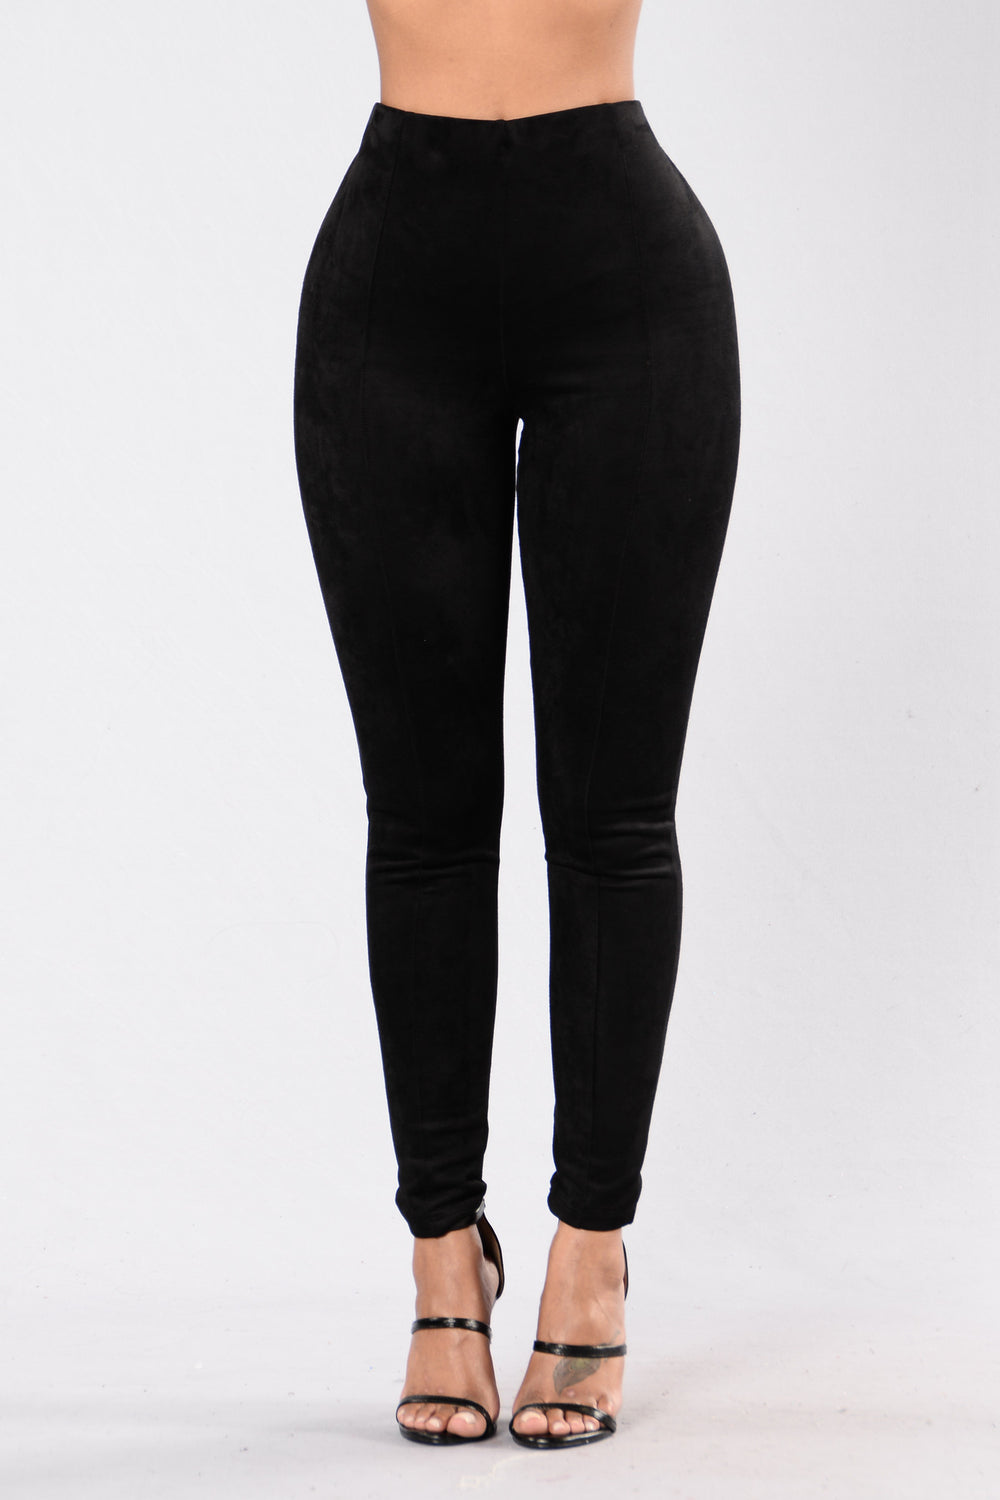 The Sophisticated Pant - Black